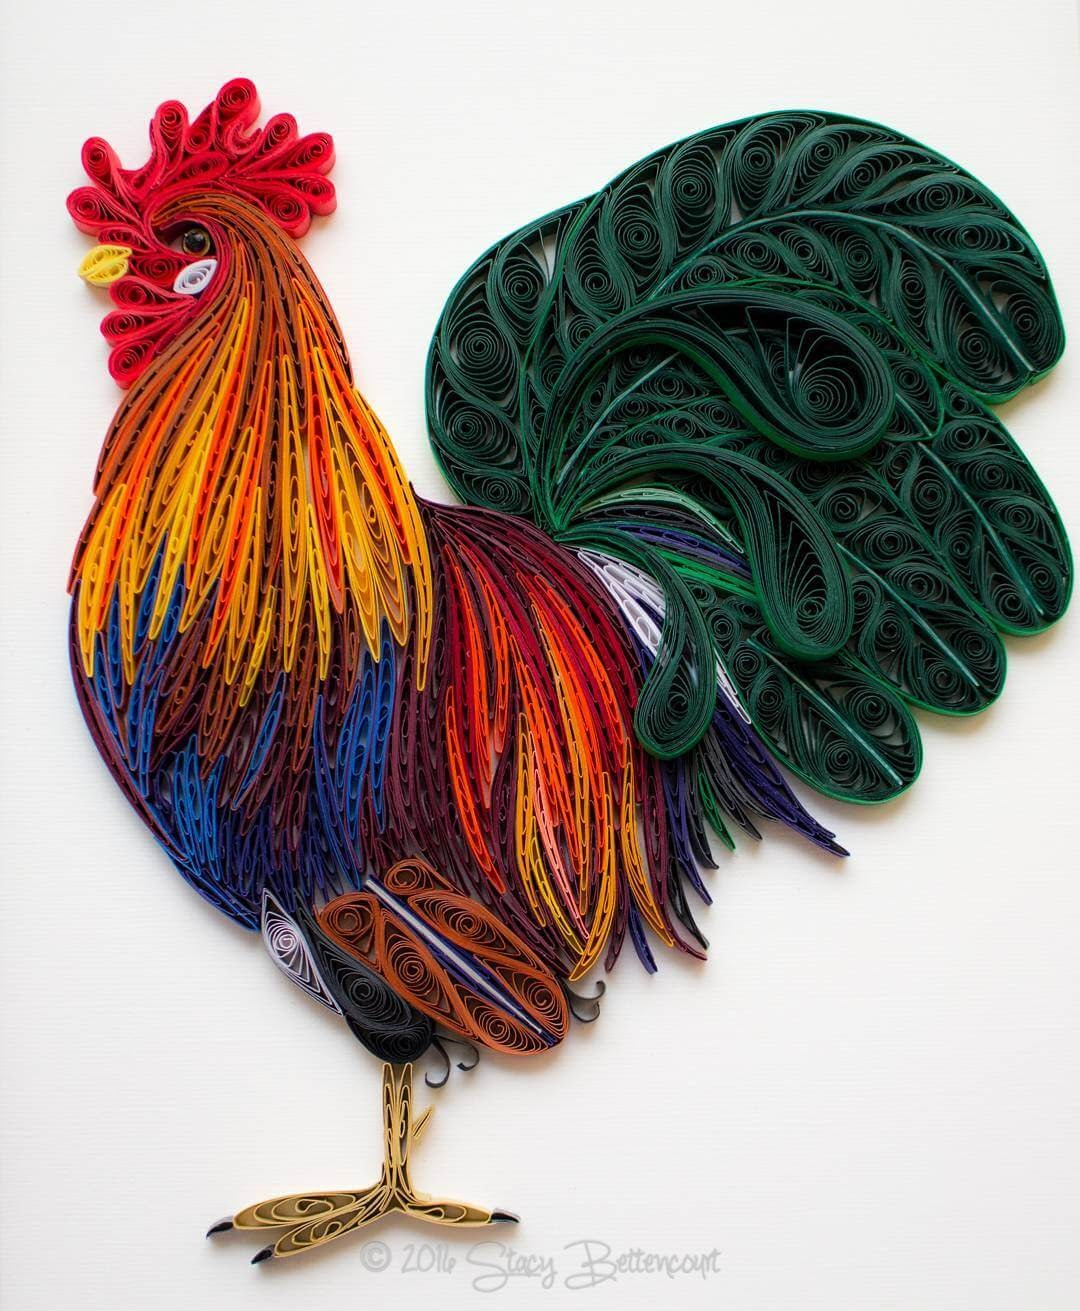 11-Rooster-Stacy-Bettencourt-Quilling-Animals-and-Game-of-Thrones-www-designstack-co